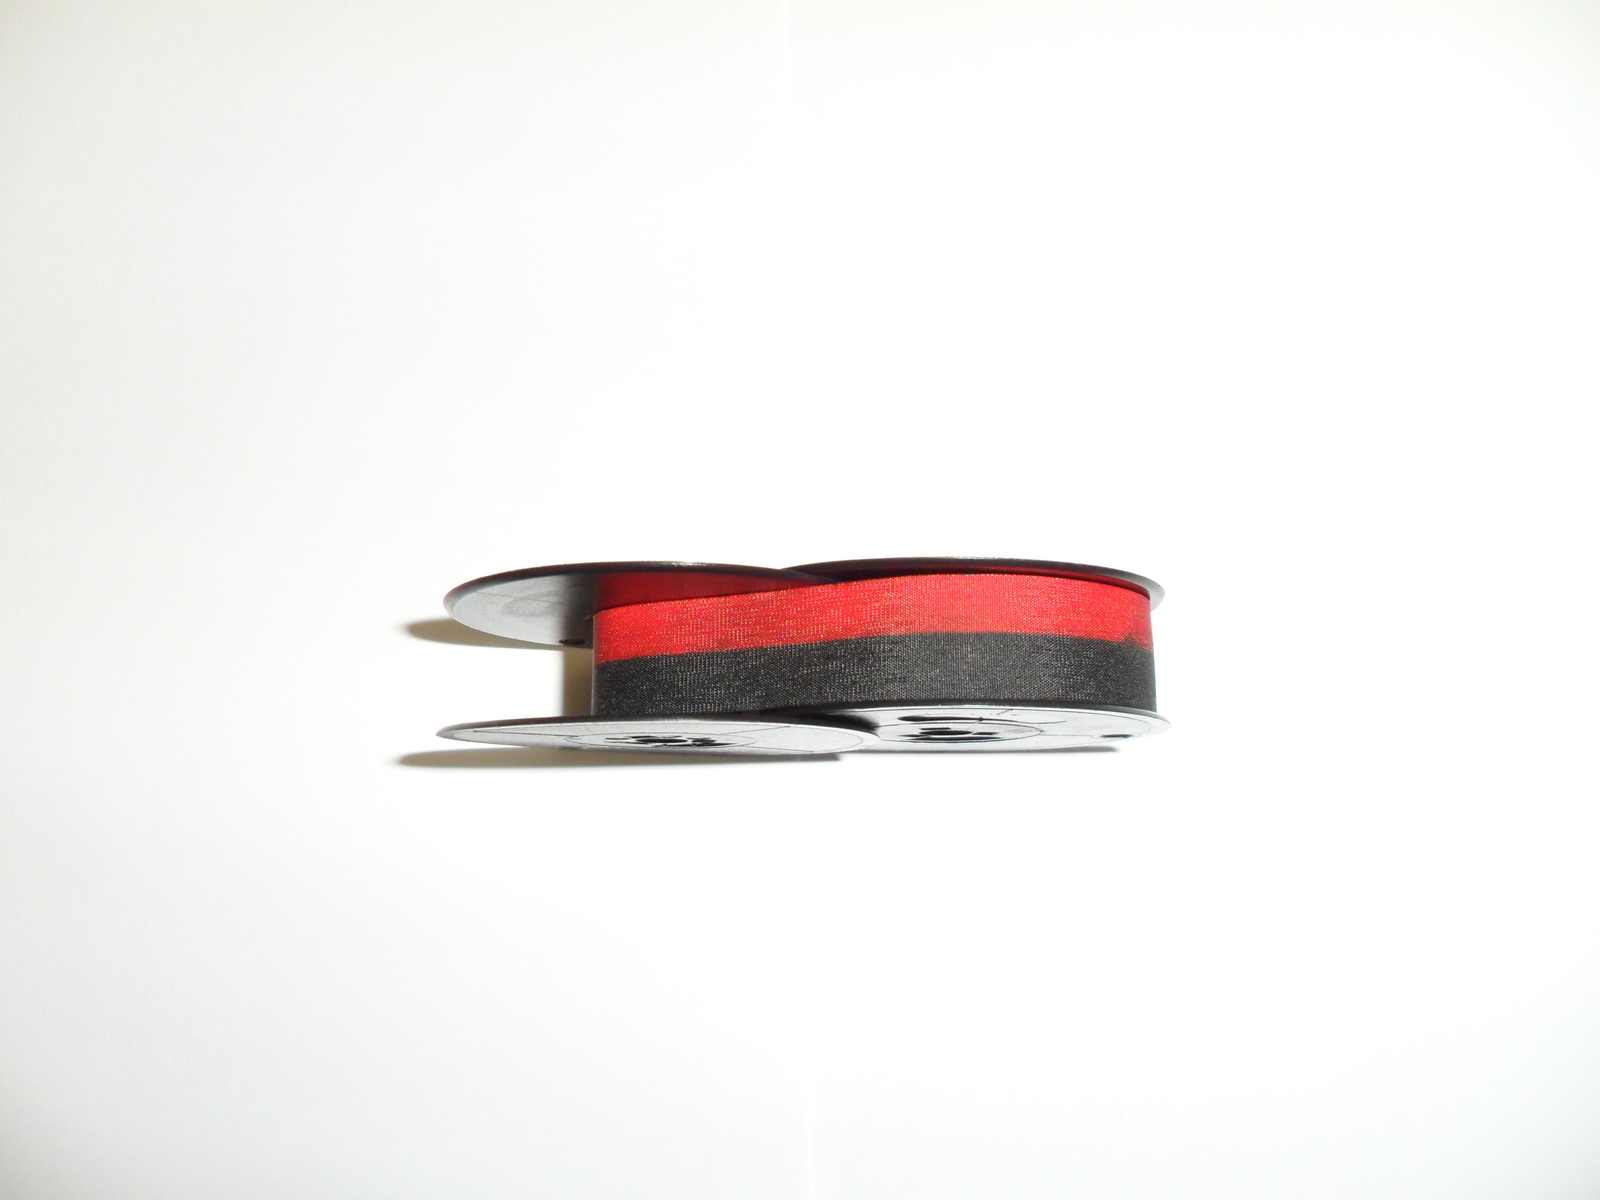 Tower Capri/Centurion Typewriter Ribbon Black and Red Twin Spool